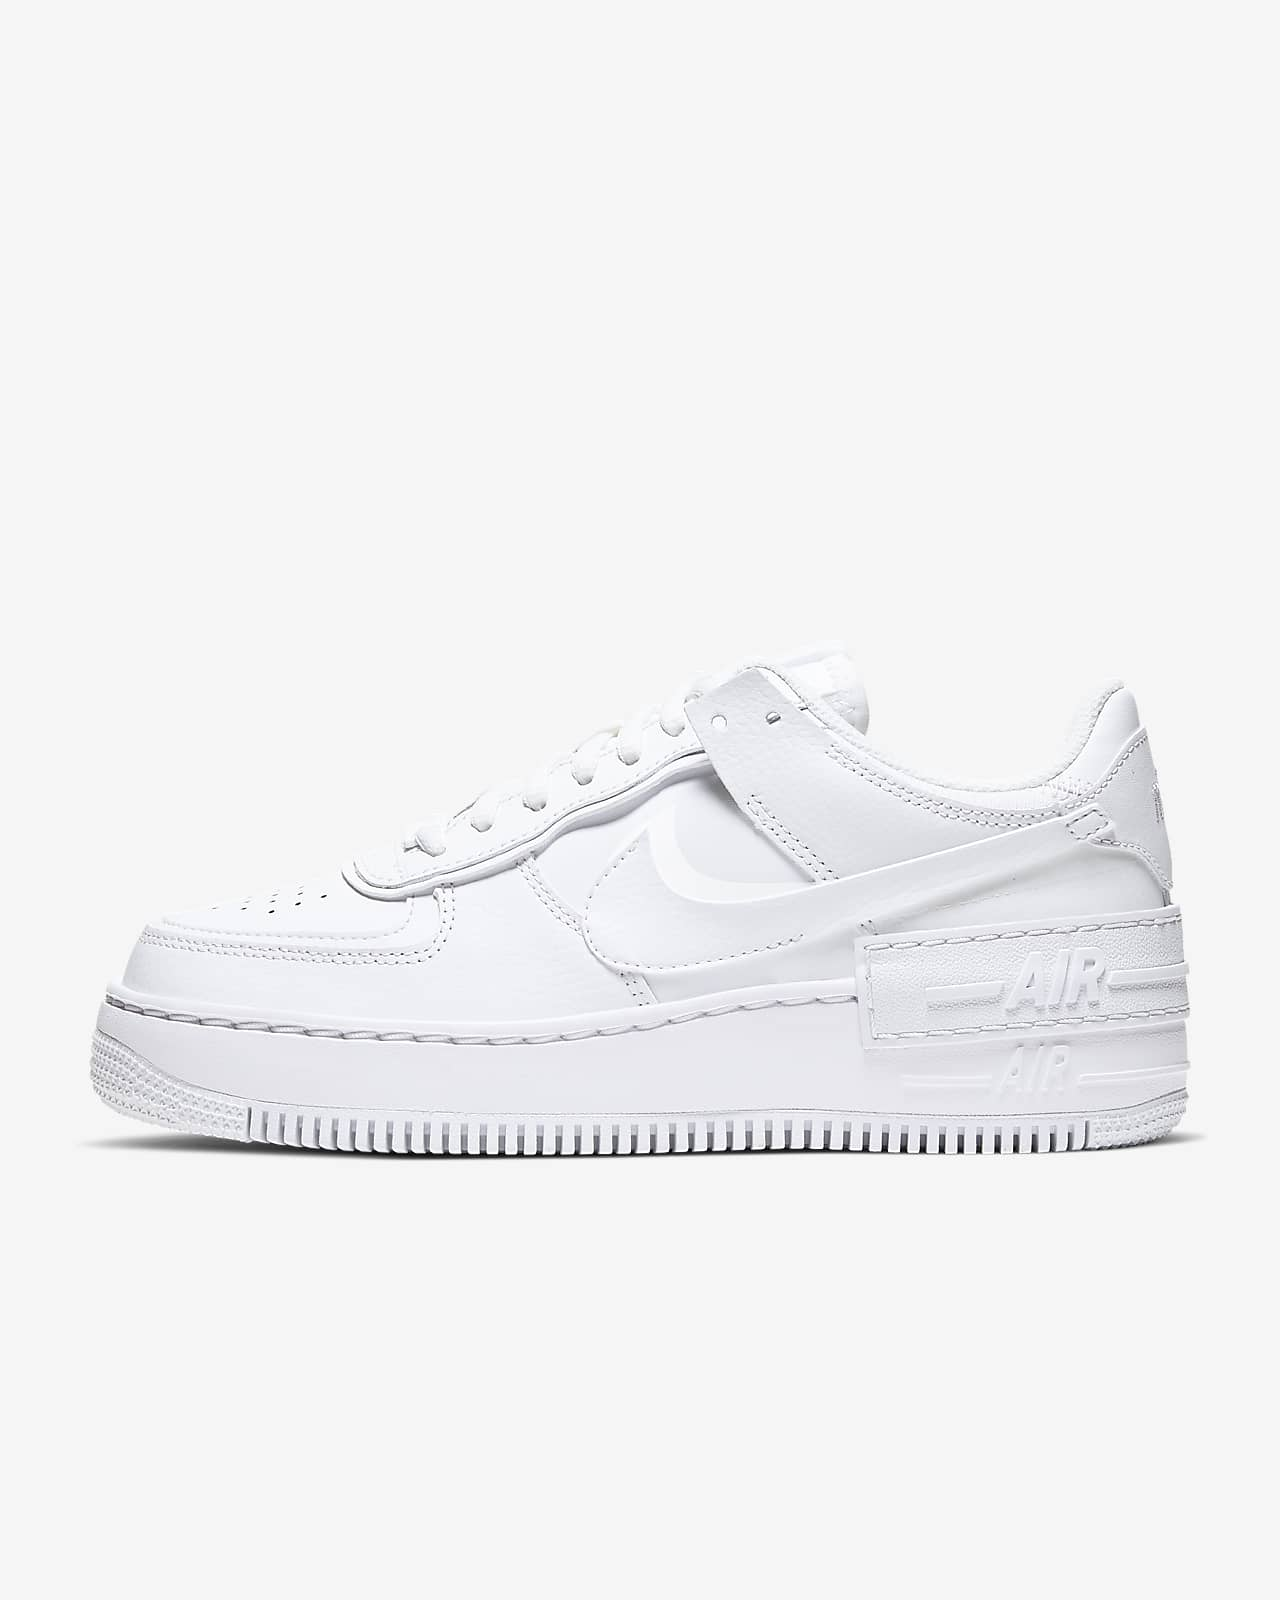 Nike Air Force 1 Shadow Women S Shoe Nike Se Кожа, синтетика, текстиль, пластик, резина. nike air force 1 shadow women s shoe